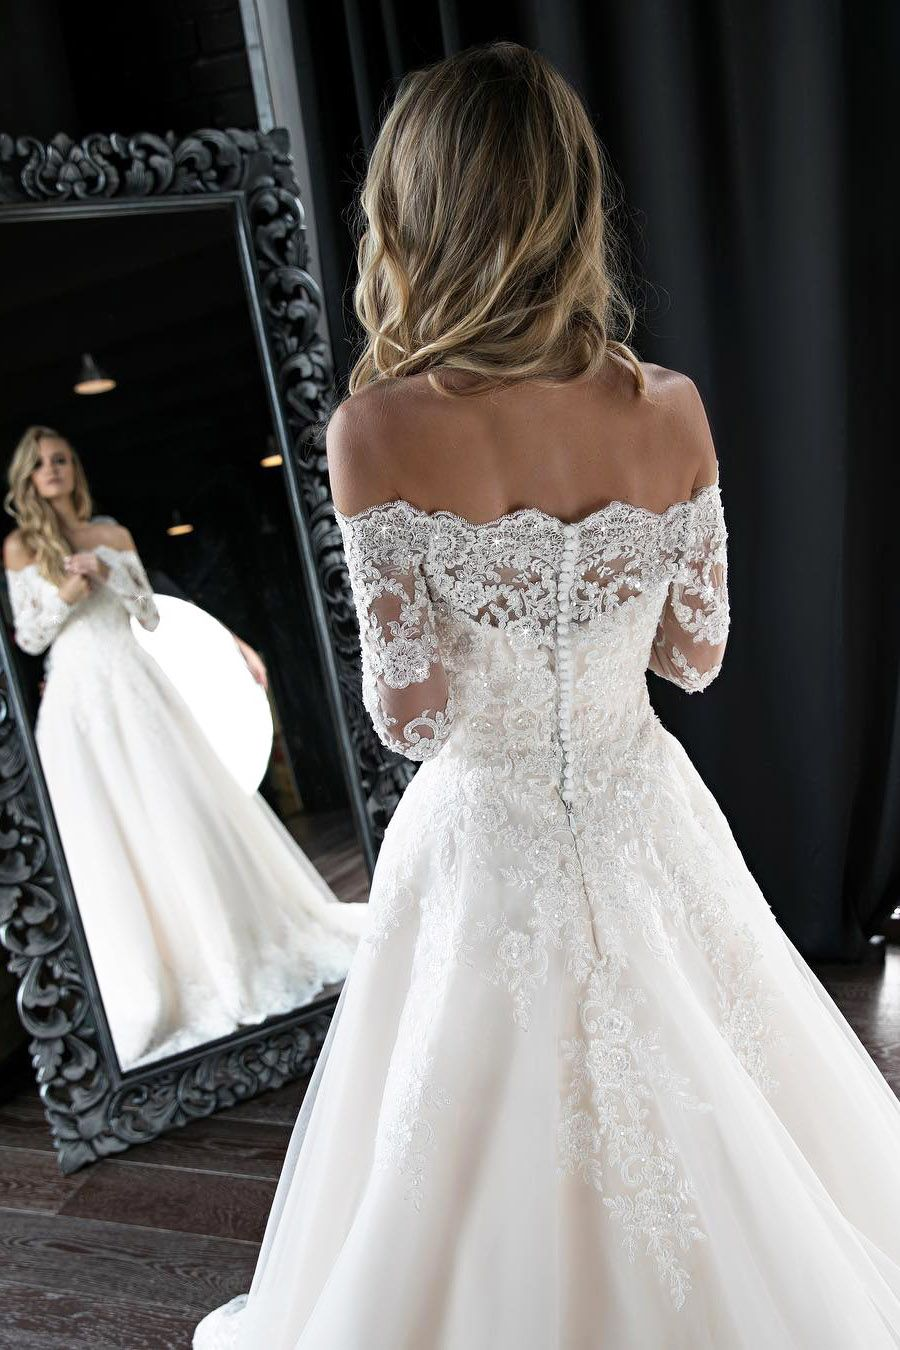 Long Sleeves Off The Shoulder White Lace Wedding Dress Long Sleeve Wedding Dress Lace Lace Wedding Dres Lace Wedding Dress With Sleeves [ 1350 x 900 Pixel ]